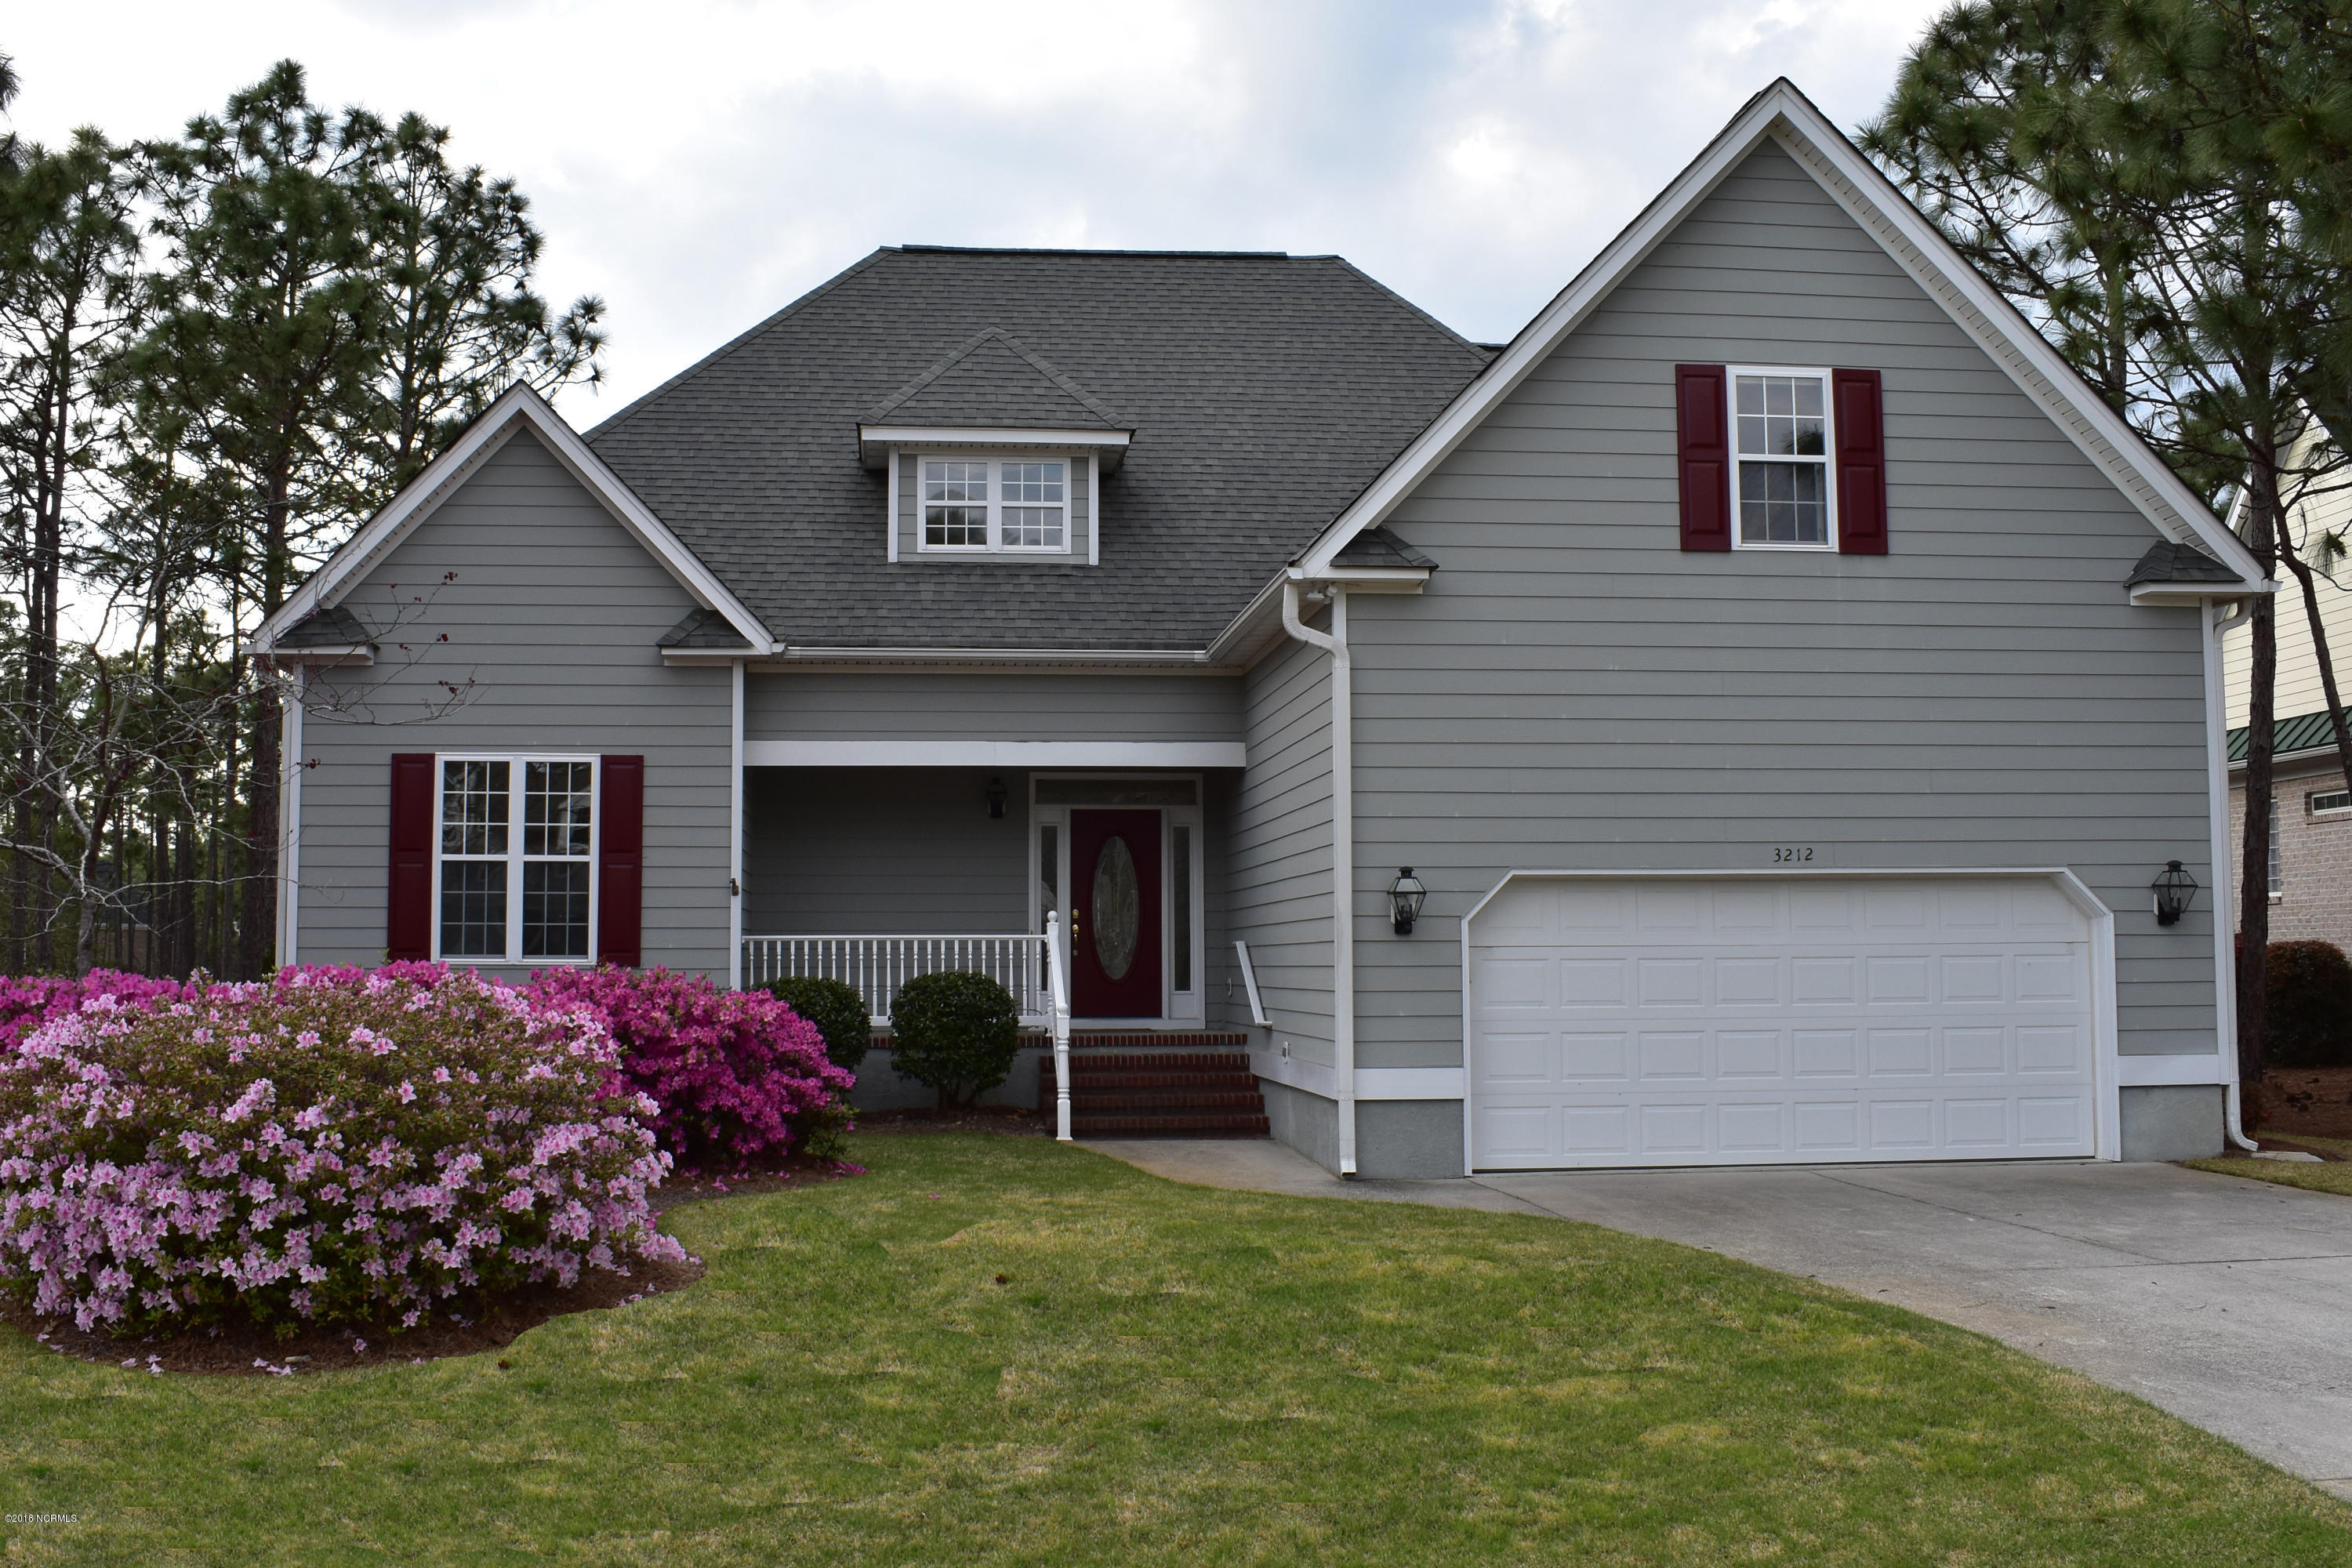 3212 Wexford Way Southport, NC 28461